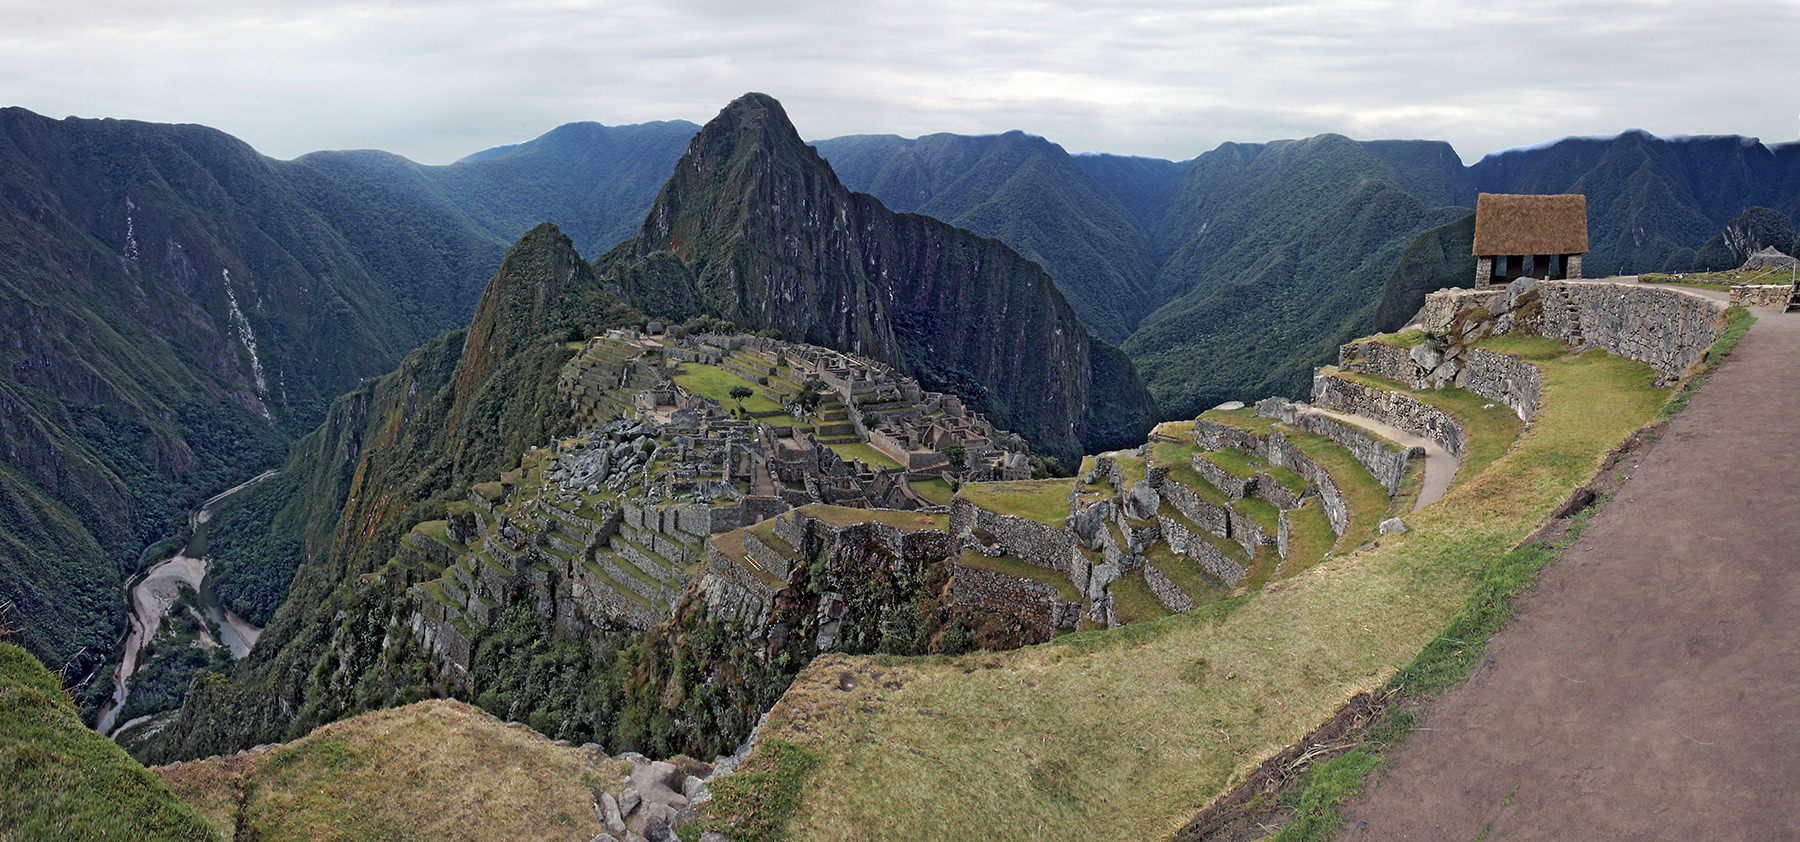 Machu Picchu with Guard House